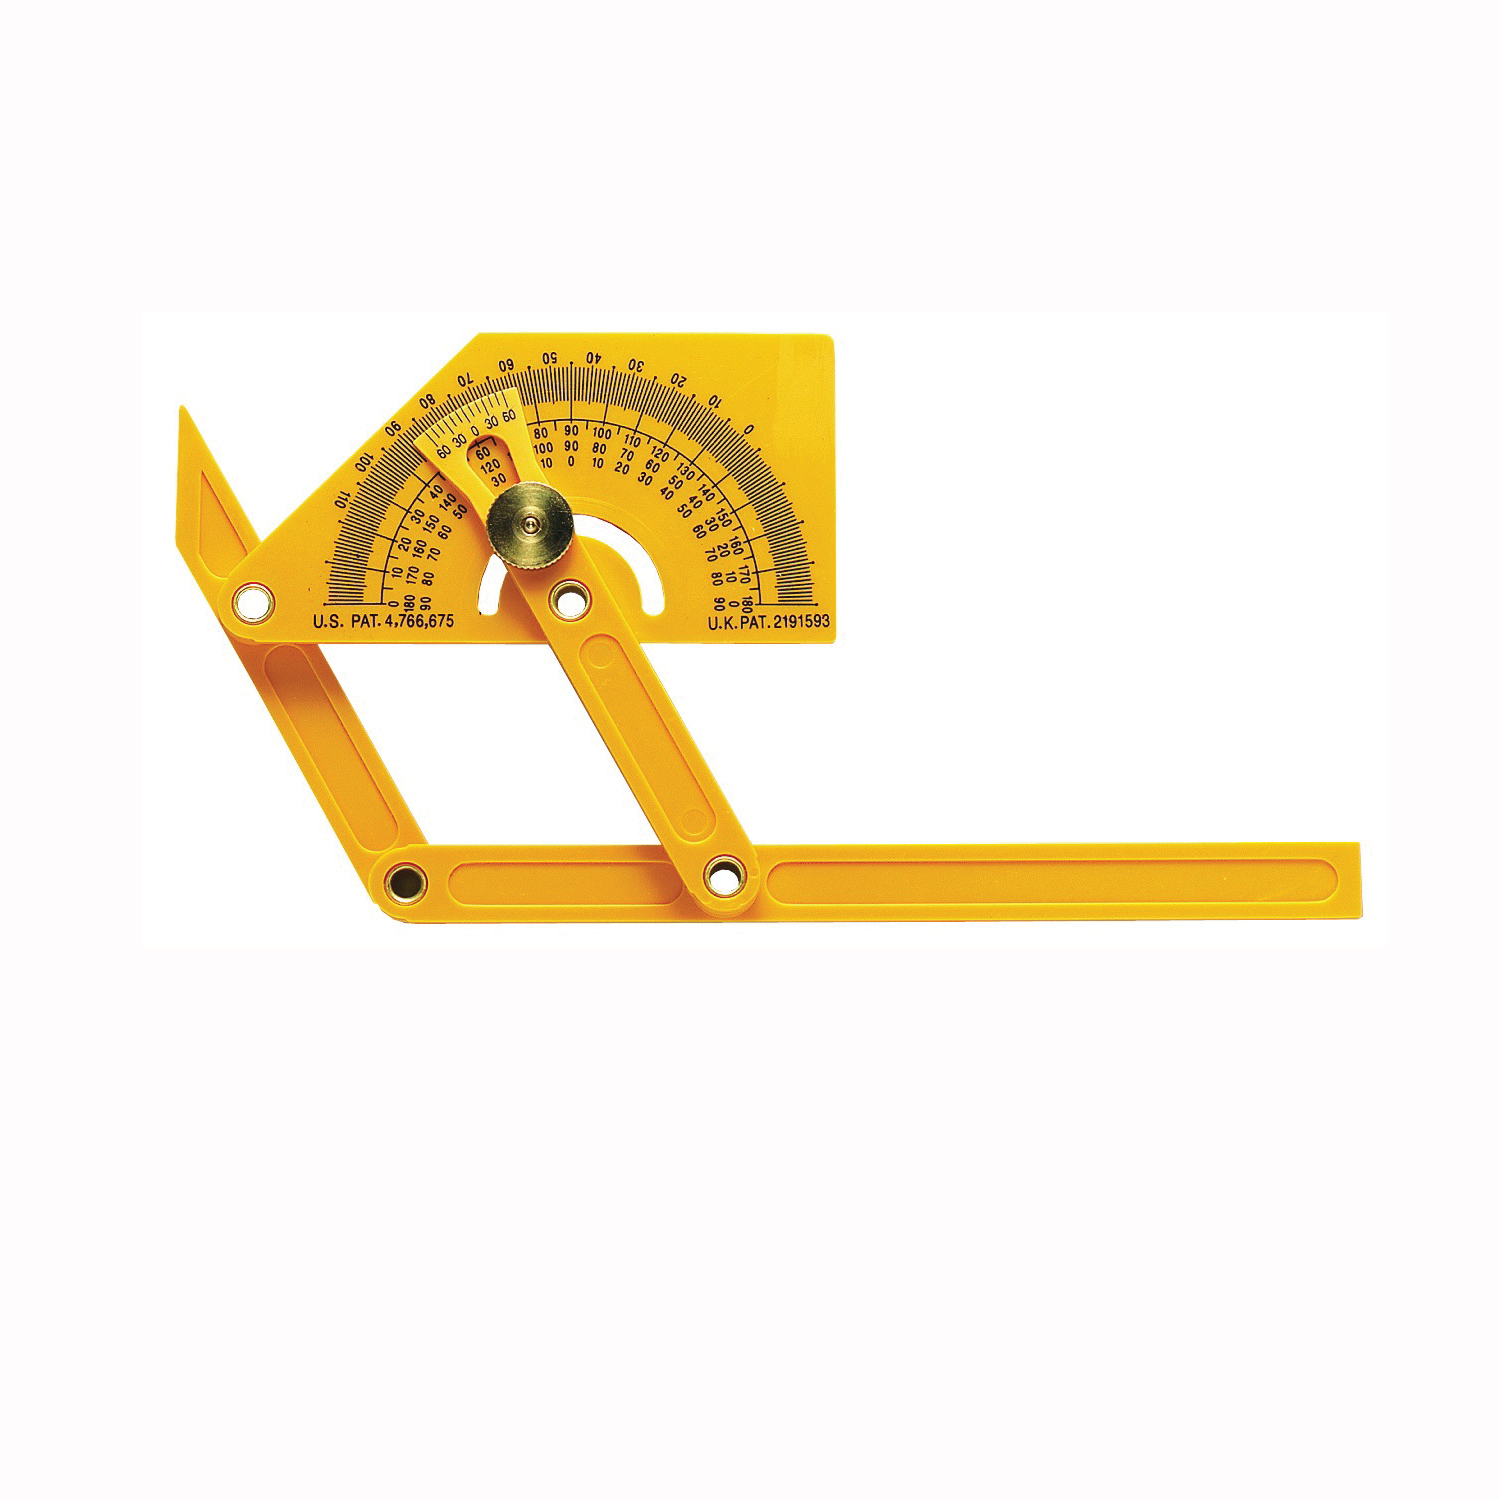 Picture of GENERAL 29 Angle Protractor with Locknut, 0 to 165 deg, Plastic